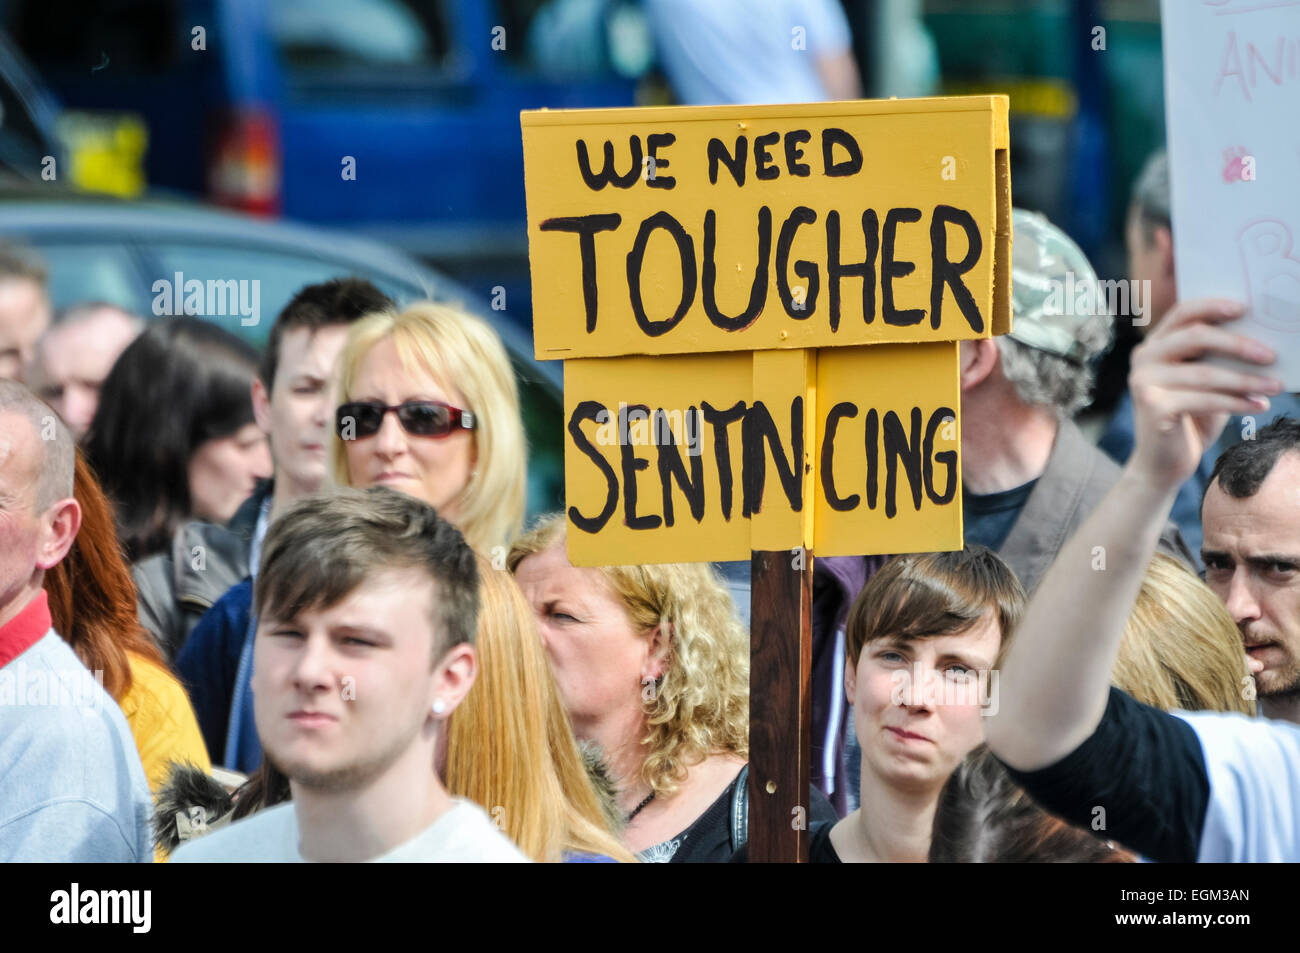 Belfast, Northern Ireland. 27 Apr 2014 - A person holds up a sign saying 'We Need Tougher Sentencing' at - Stock Image